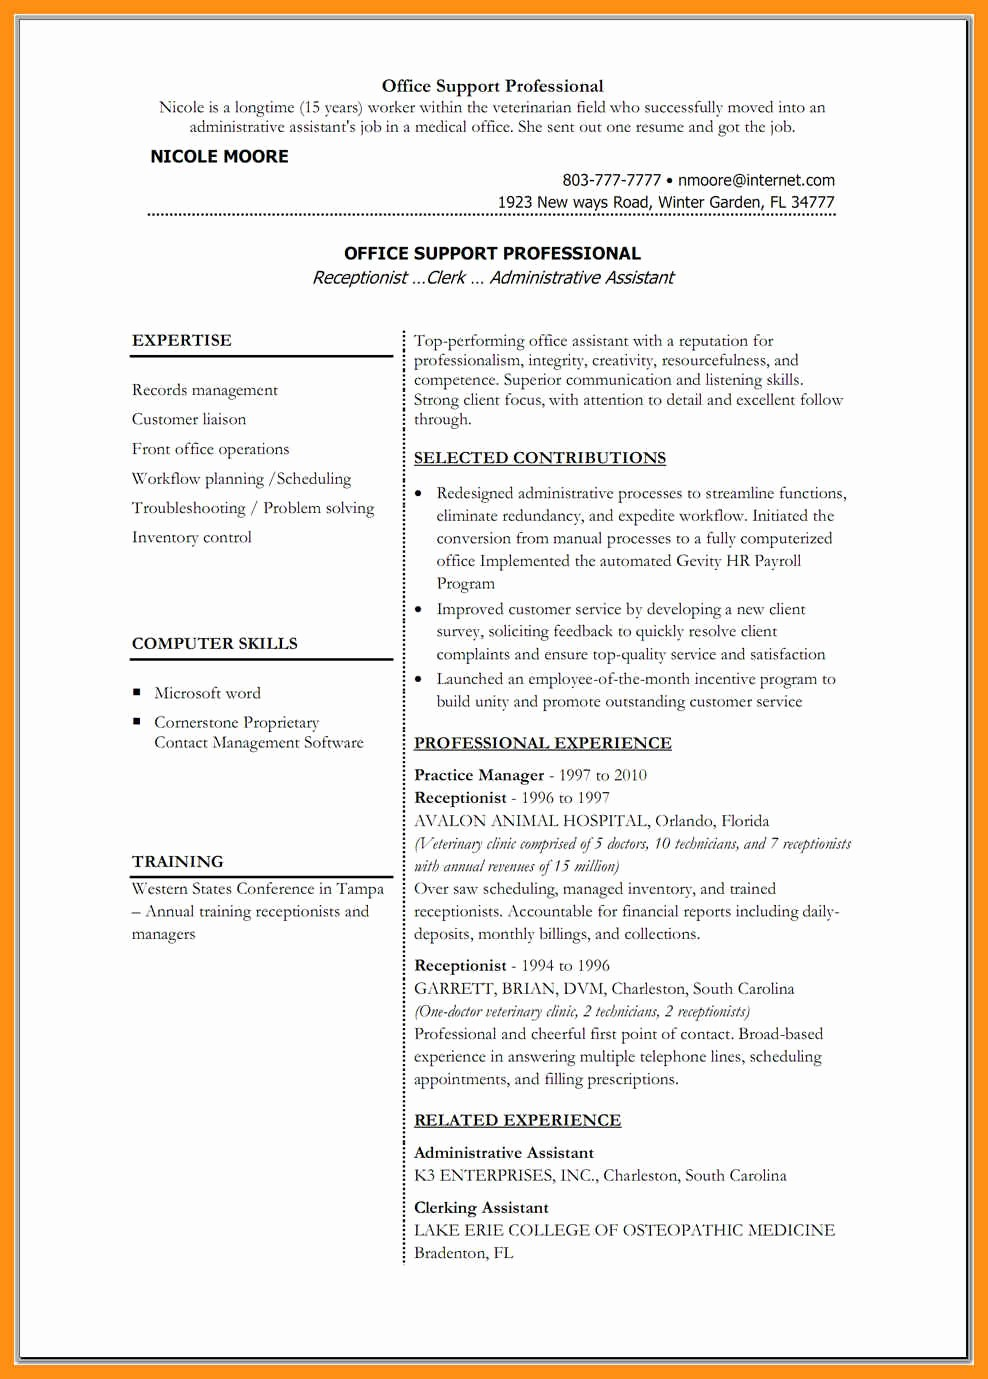 Best Ms Word Resume Templates Elegant Good Resume Templates for Word